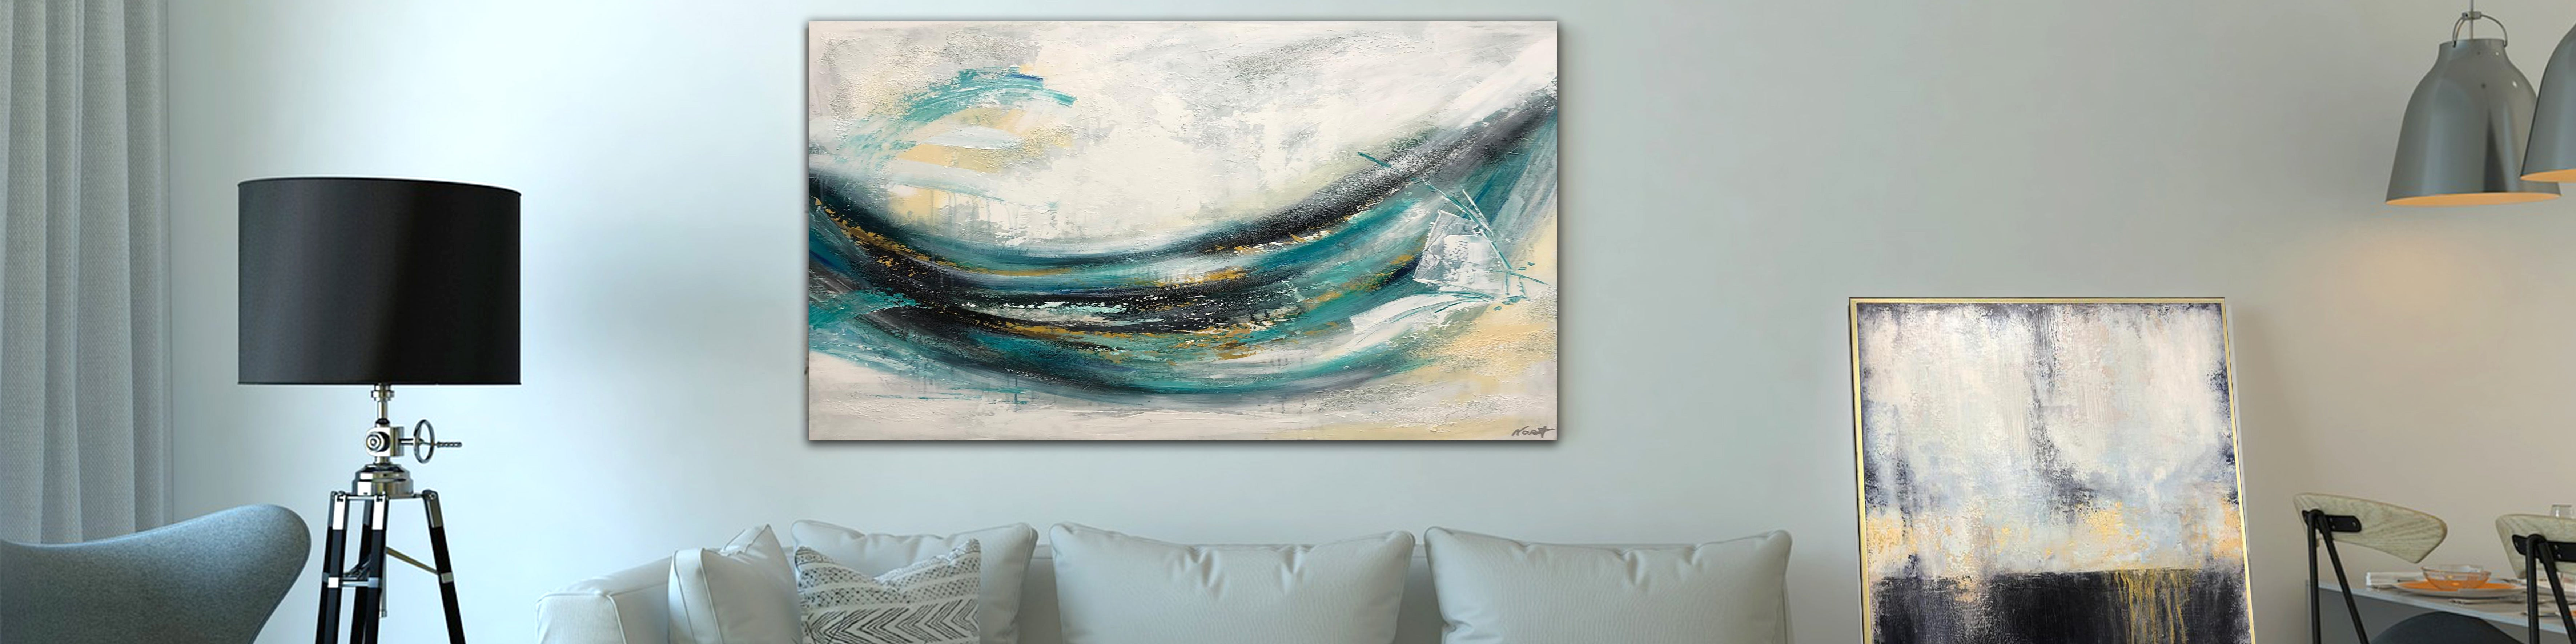 How to decorate a bedroom with original art canvas